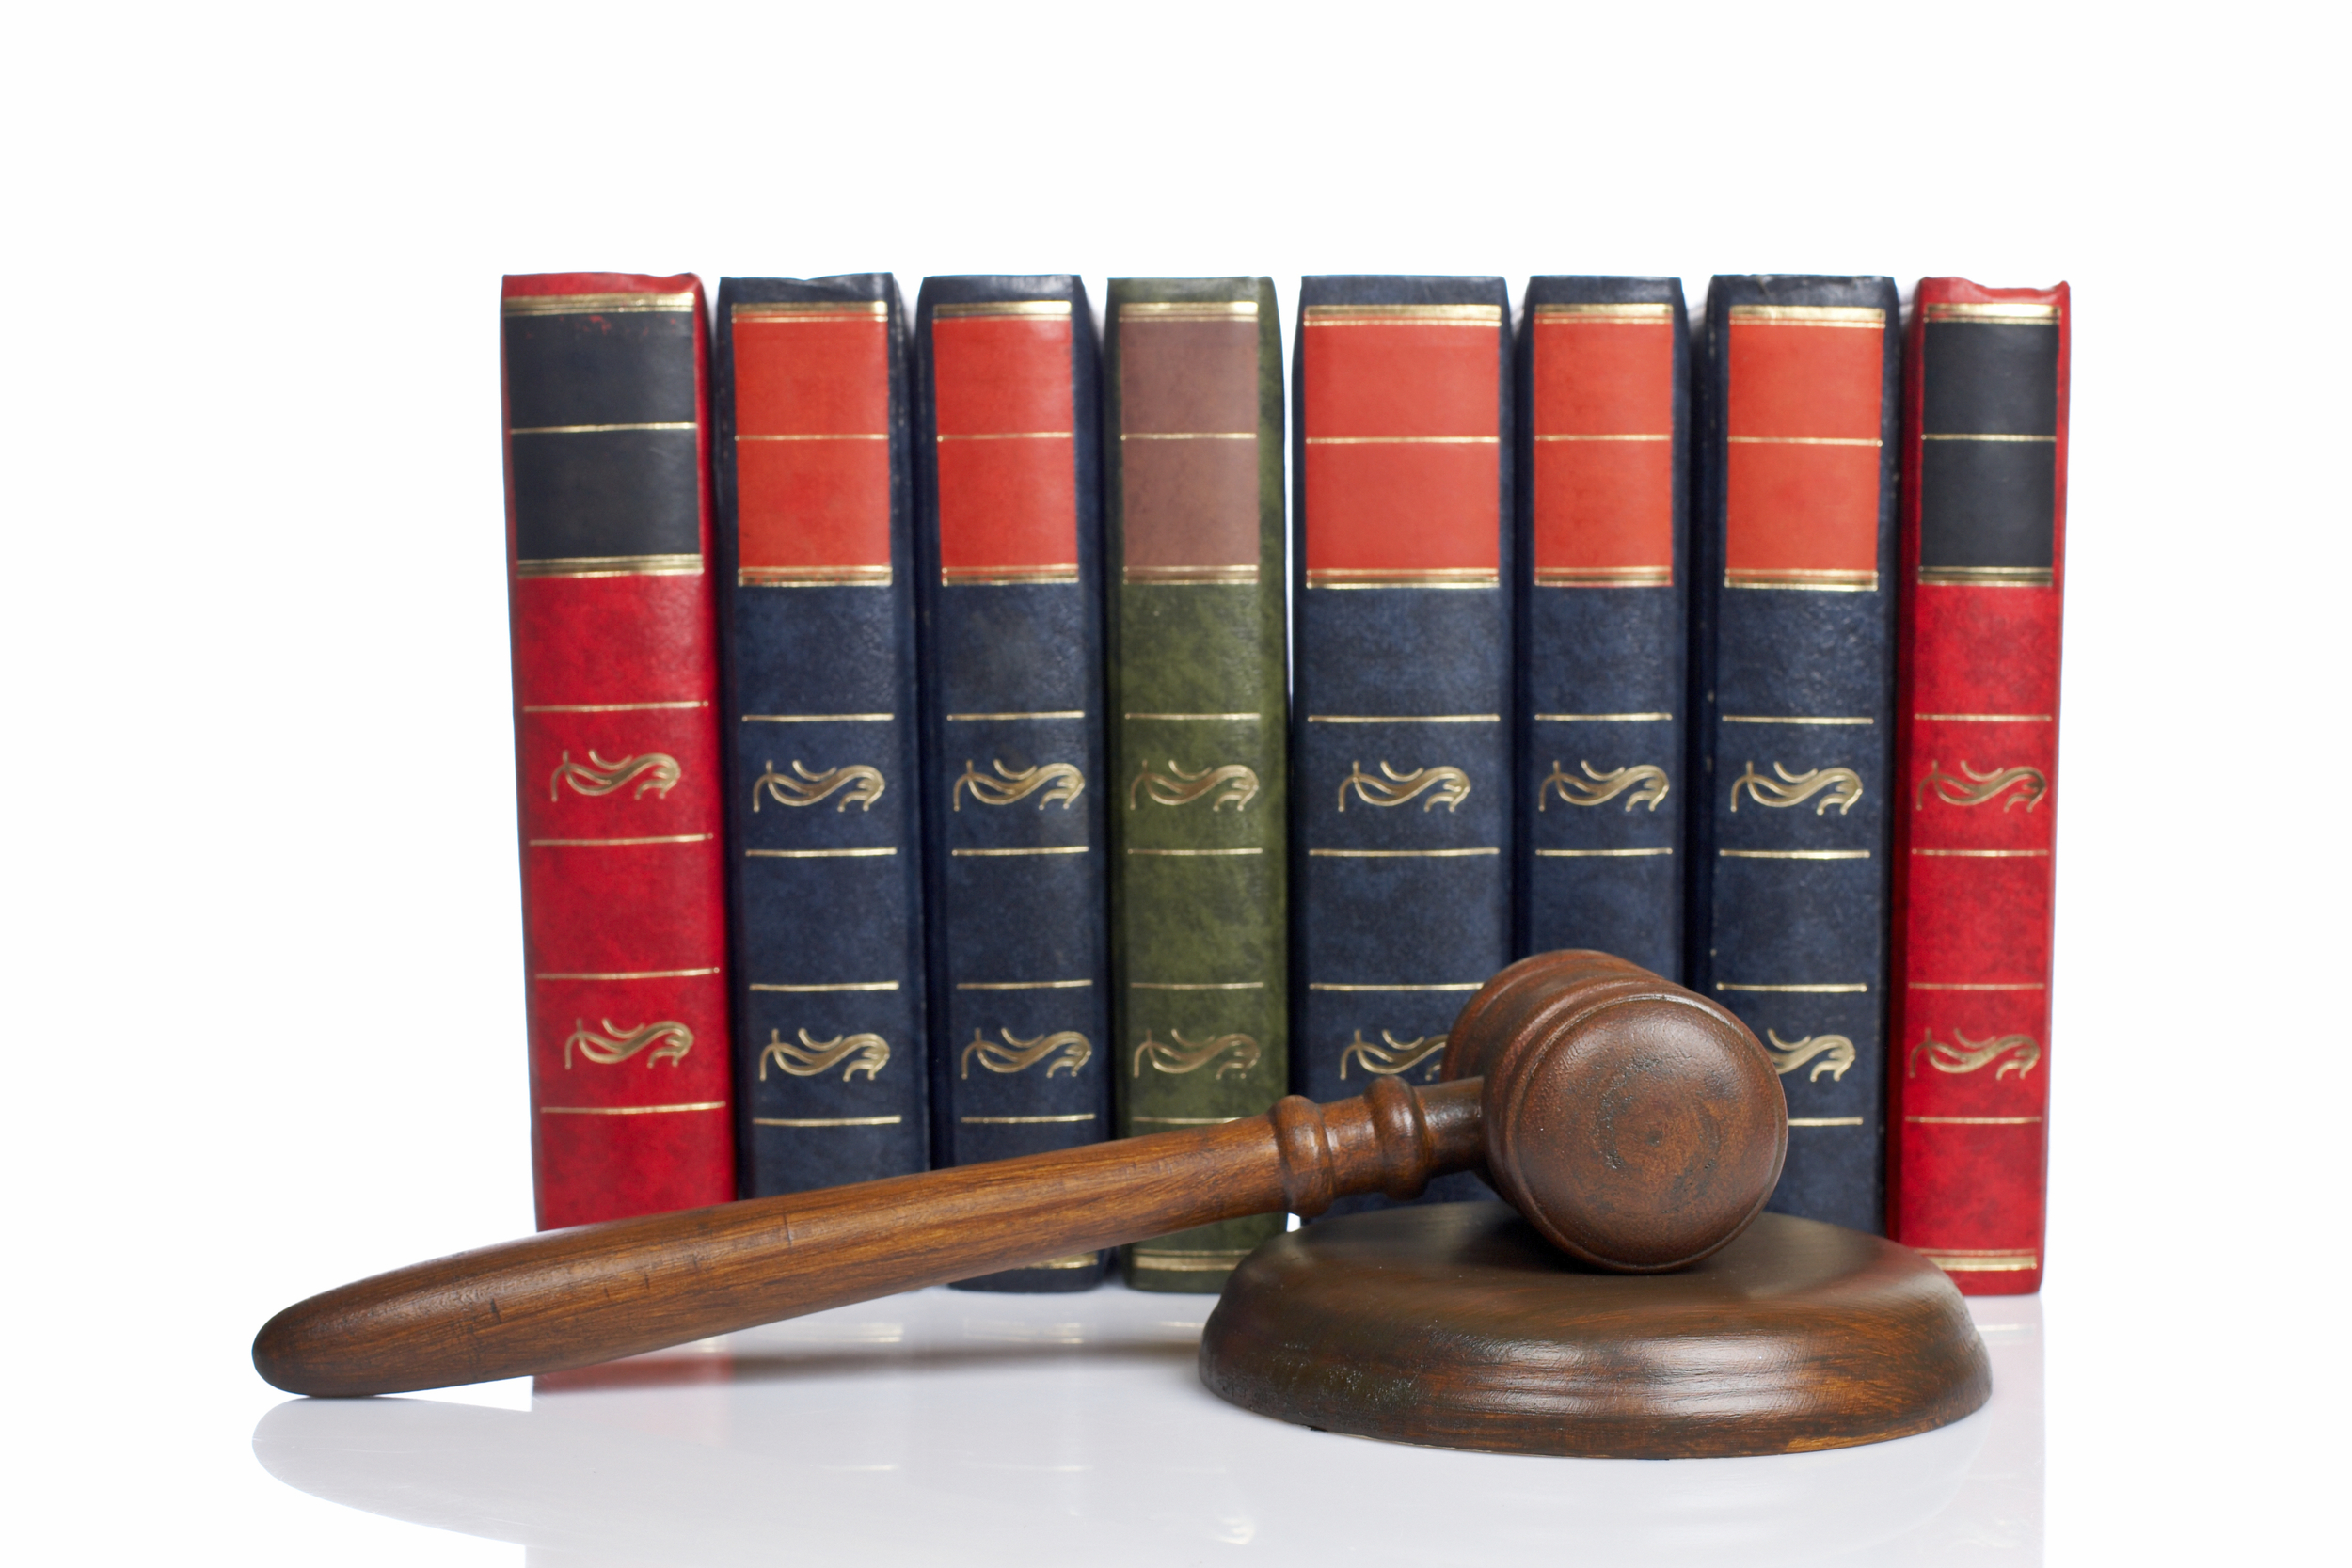 Old Law Books Set Legal Series Textbooks Judges Wooden Gavel Isolated.jpg